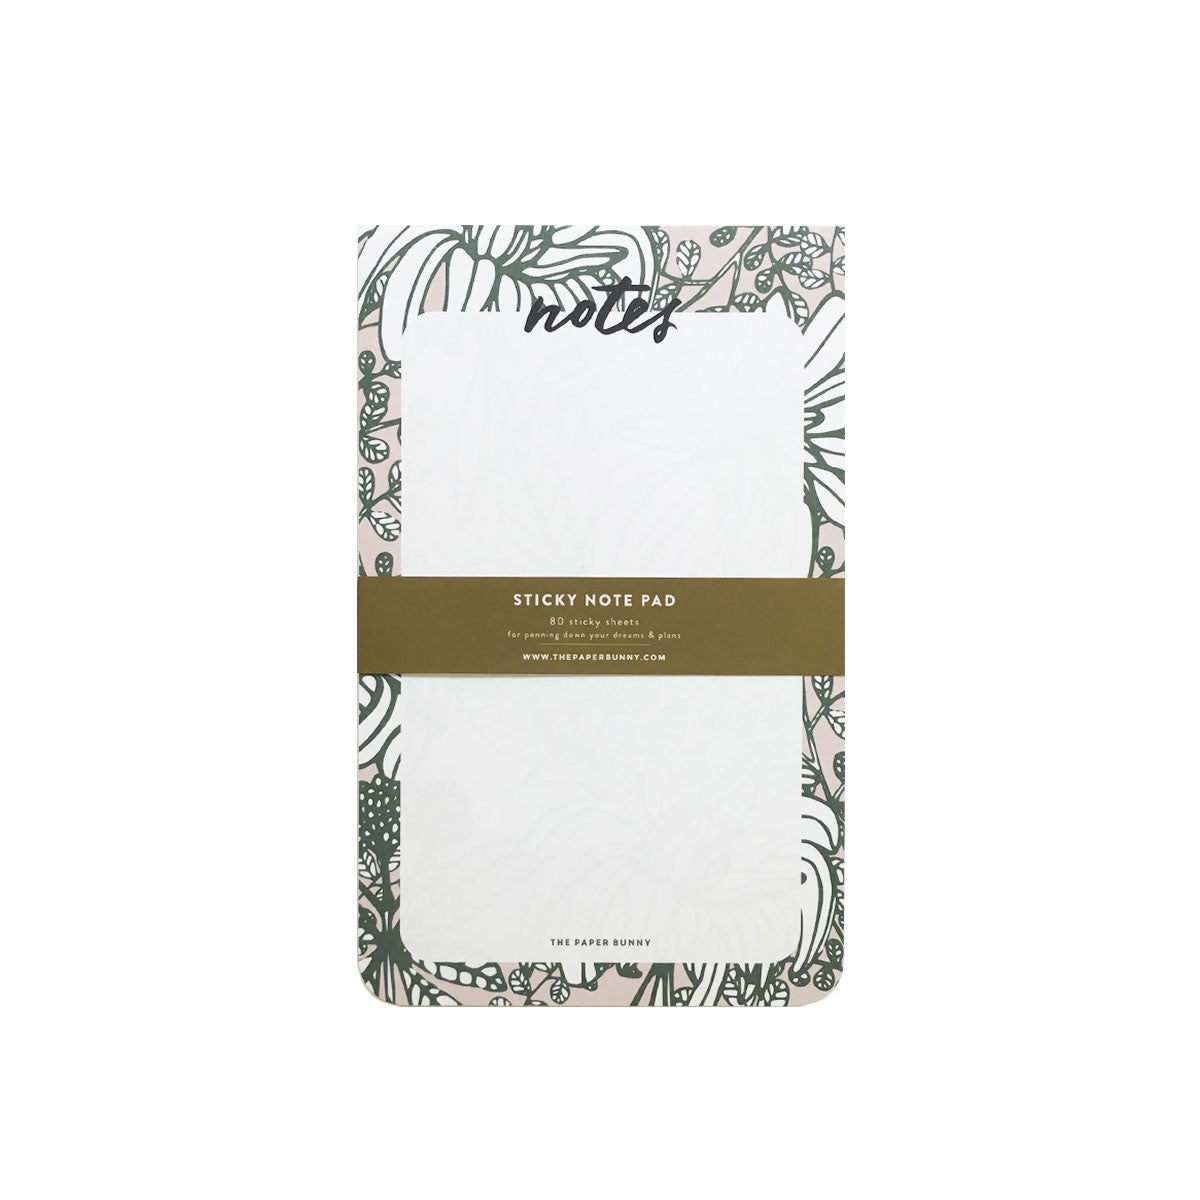 THE PAPER BUNNY- LUSH BOTANICALS STICKY NOTEPAD